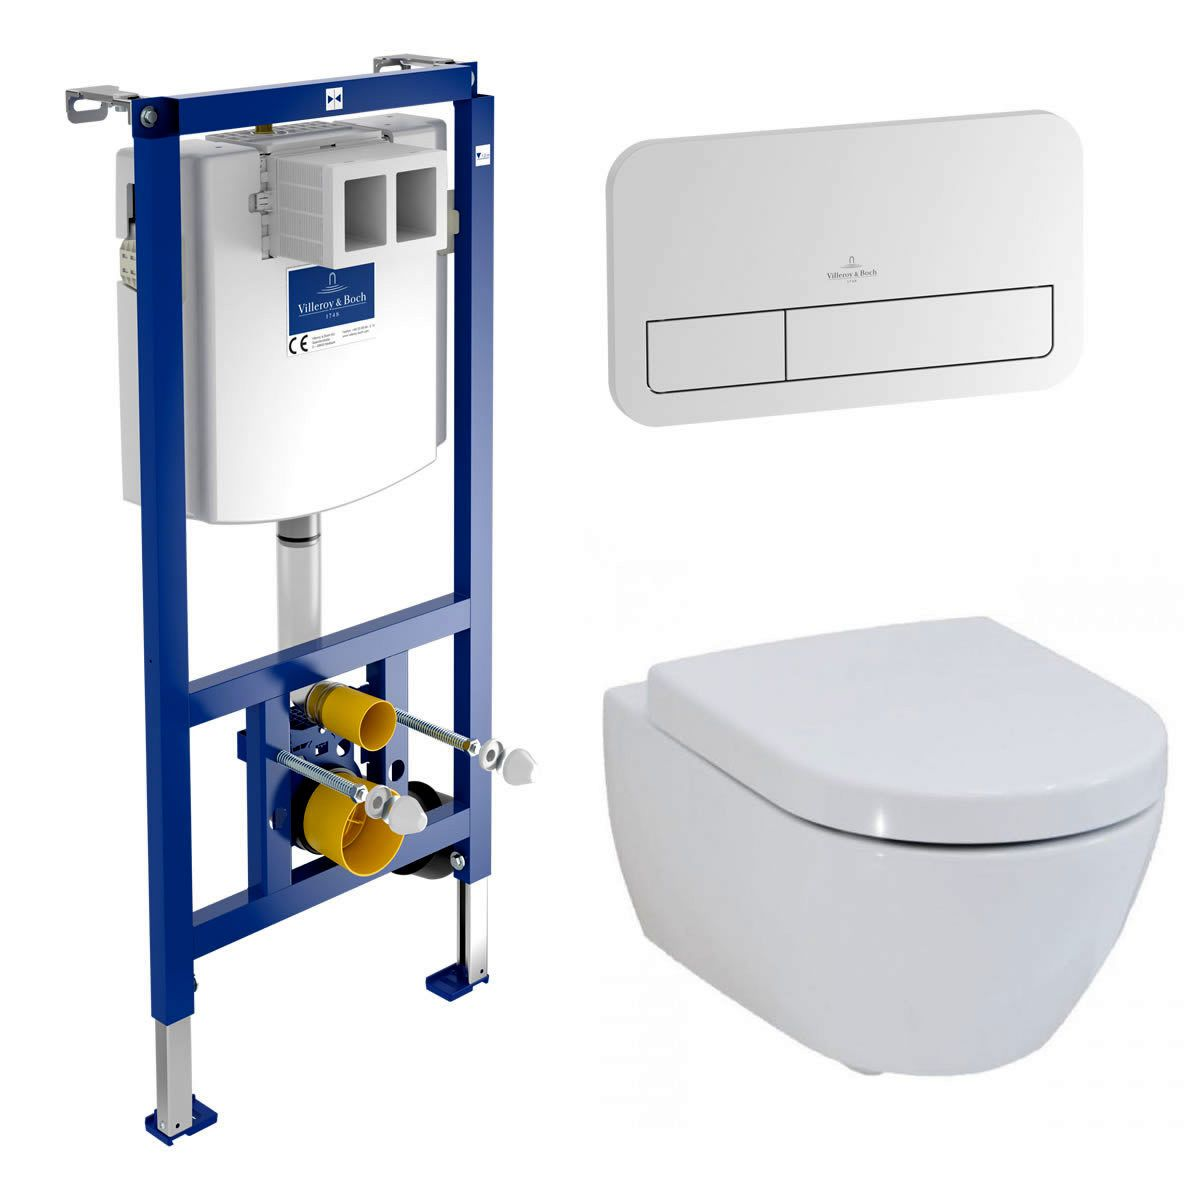 Villeroy and Boch Subway 2.0 Rimless Wall Hung Toilet and ViConnect Frame Pack